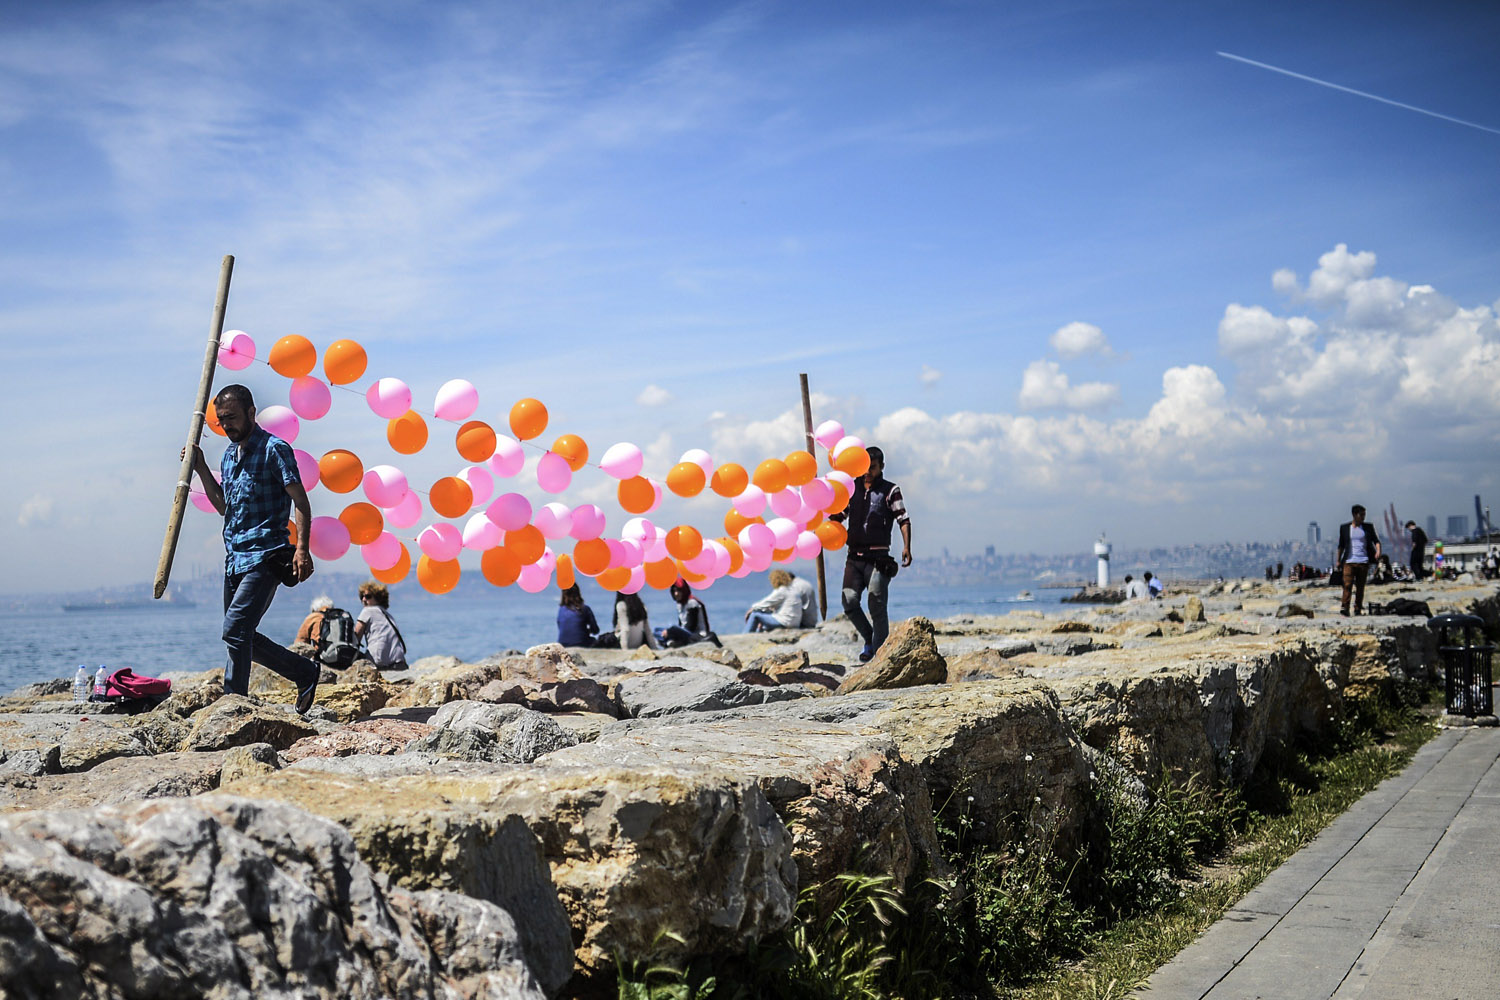 Men carry balloons near the sea at Kadikoy on May 3, 2014, in Istanbul, Turkey